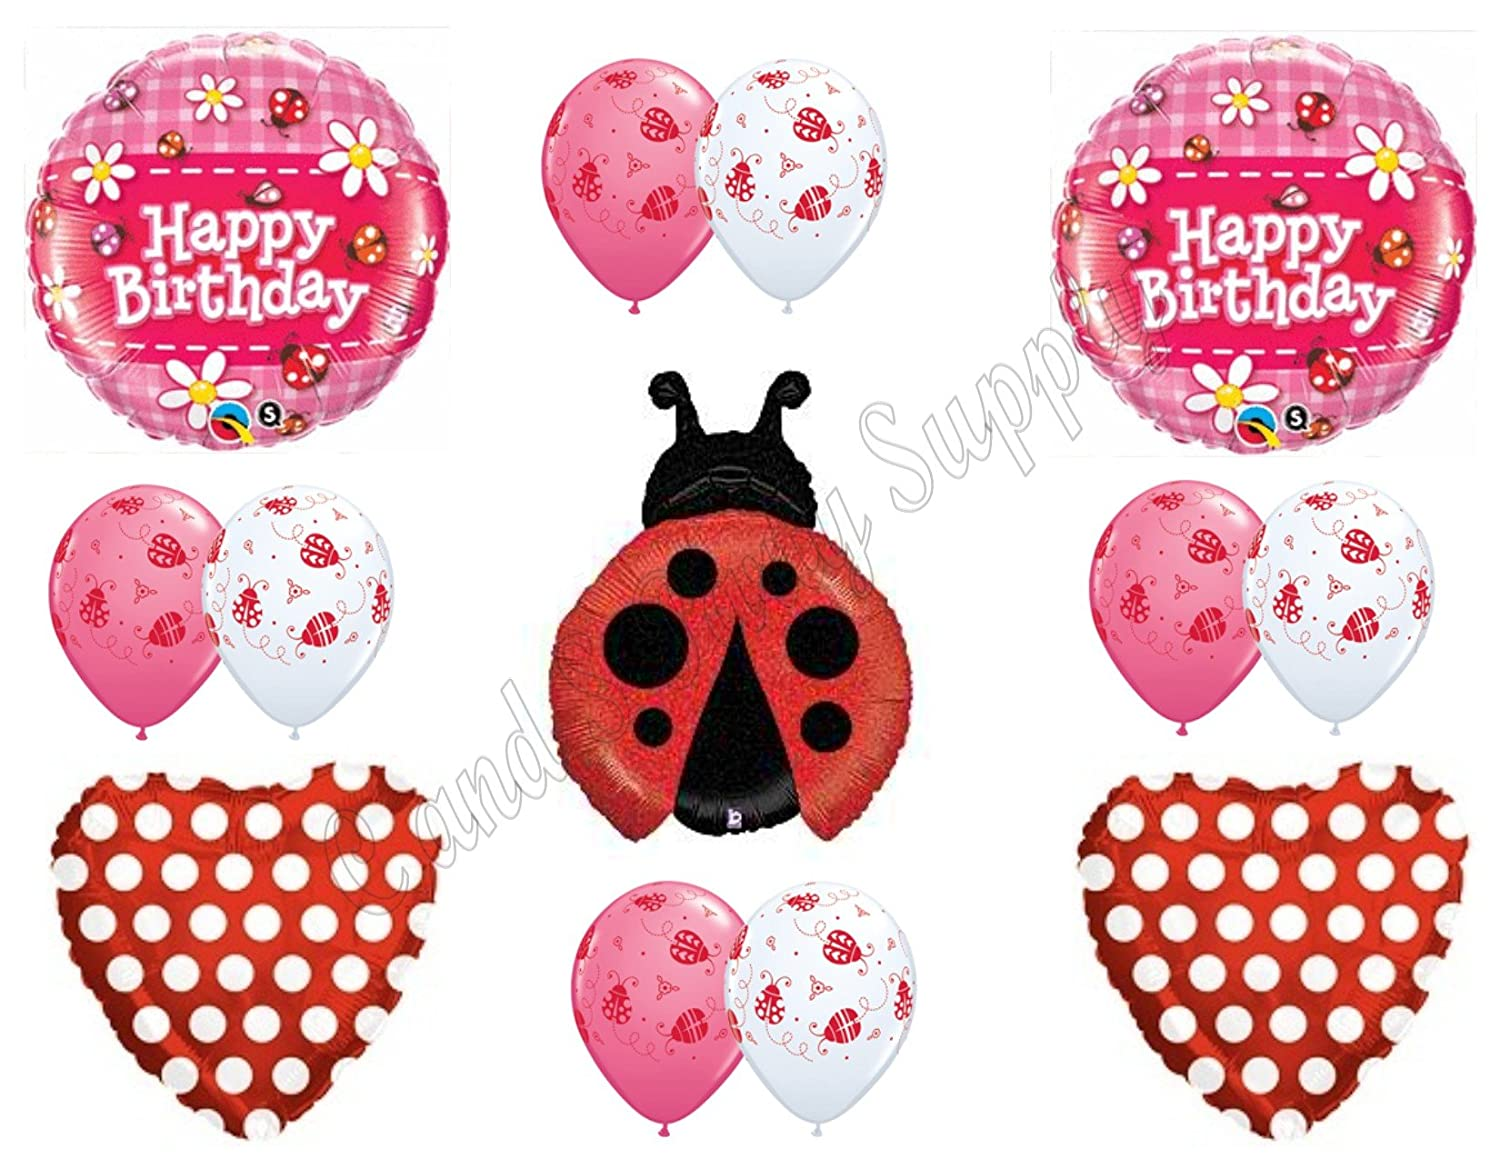 LADYBUG RED POLKA DOTS Happy Birthday Balloons Decoration Supplies 1st 2nd 3rd